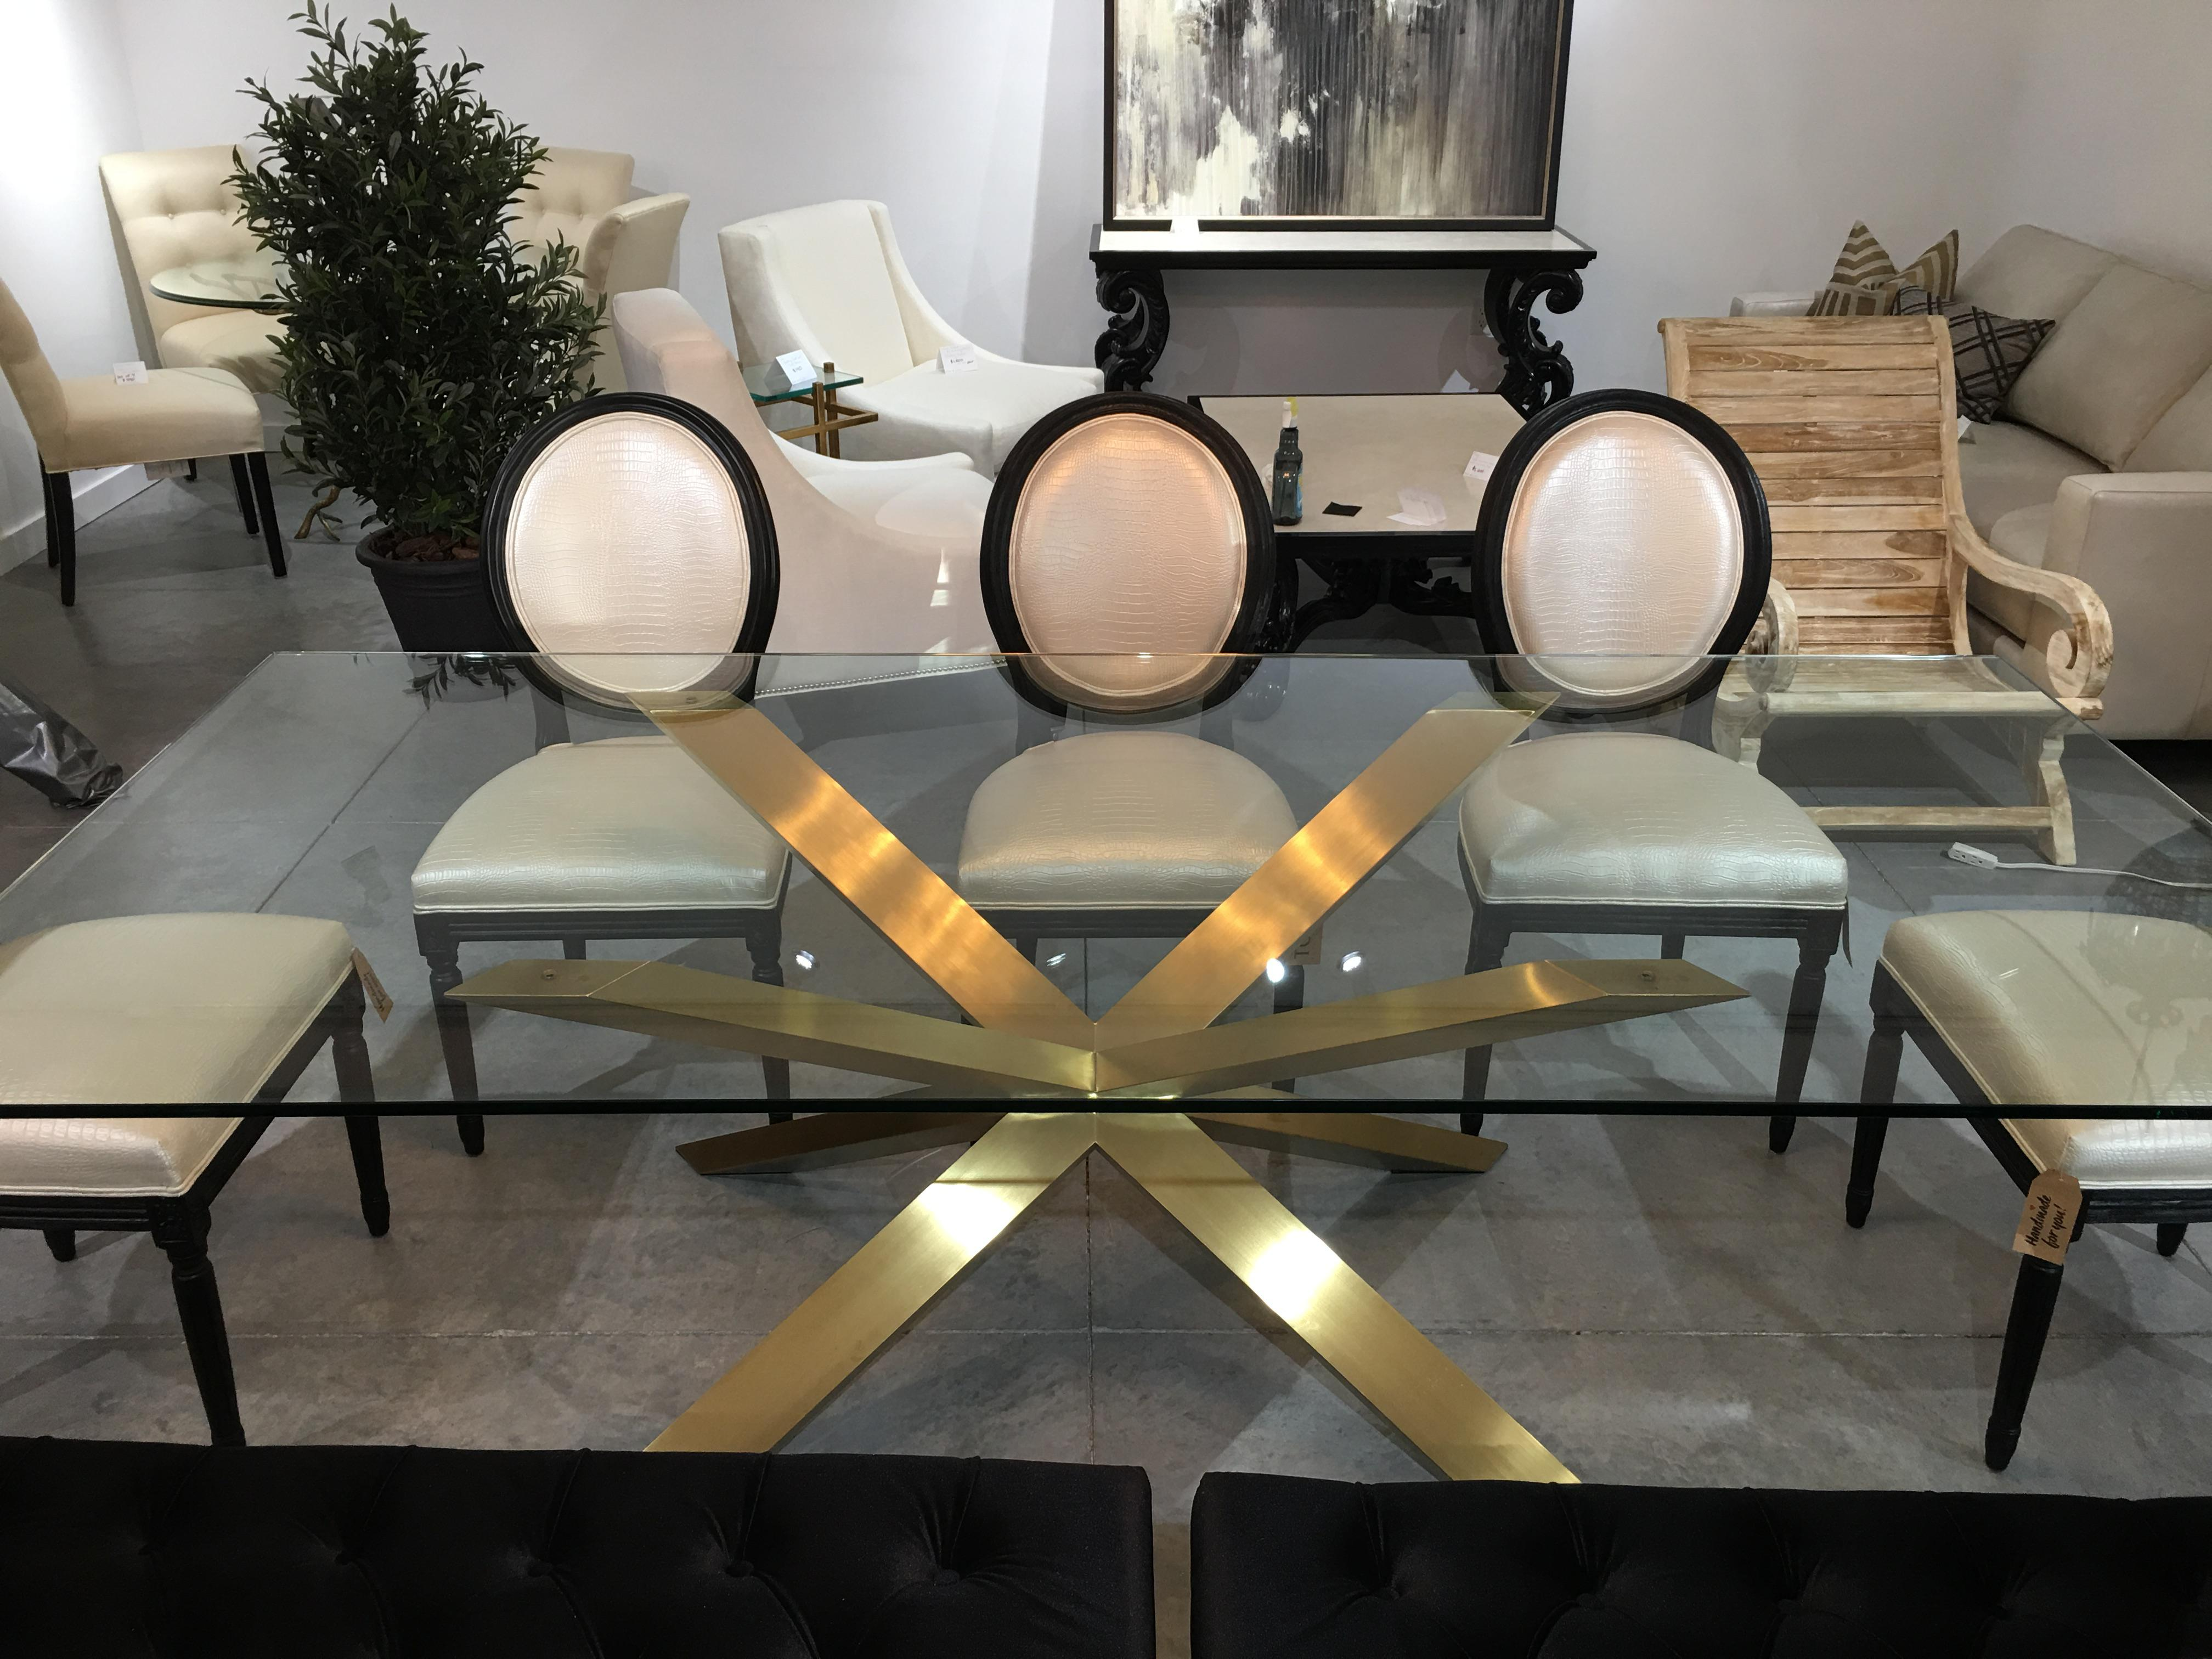 Merveilleux NEST INTERIOR DESIGN SHOWROOM SAMPLE Nuevo Livingu0027s Couture Dining Table Is  An Inspired Example Of Bold